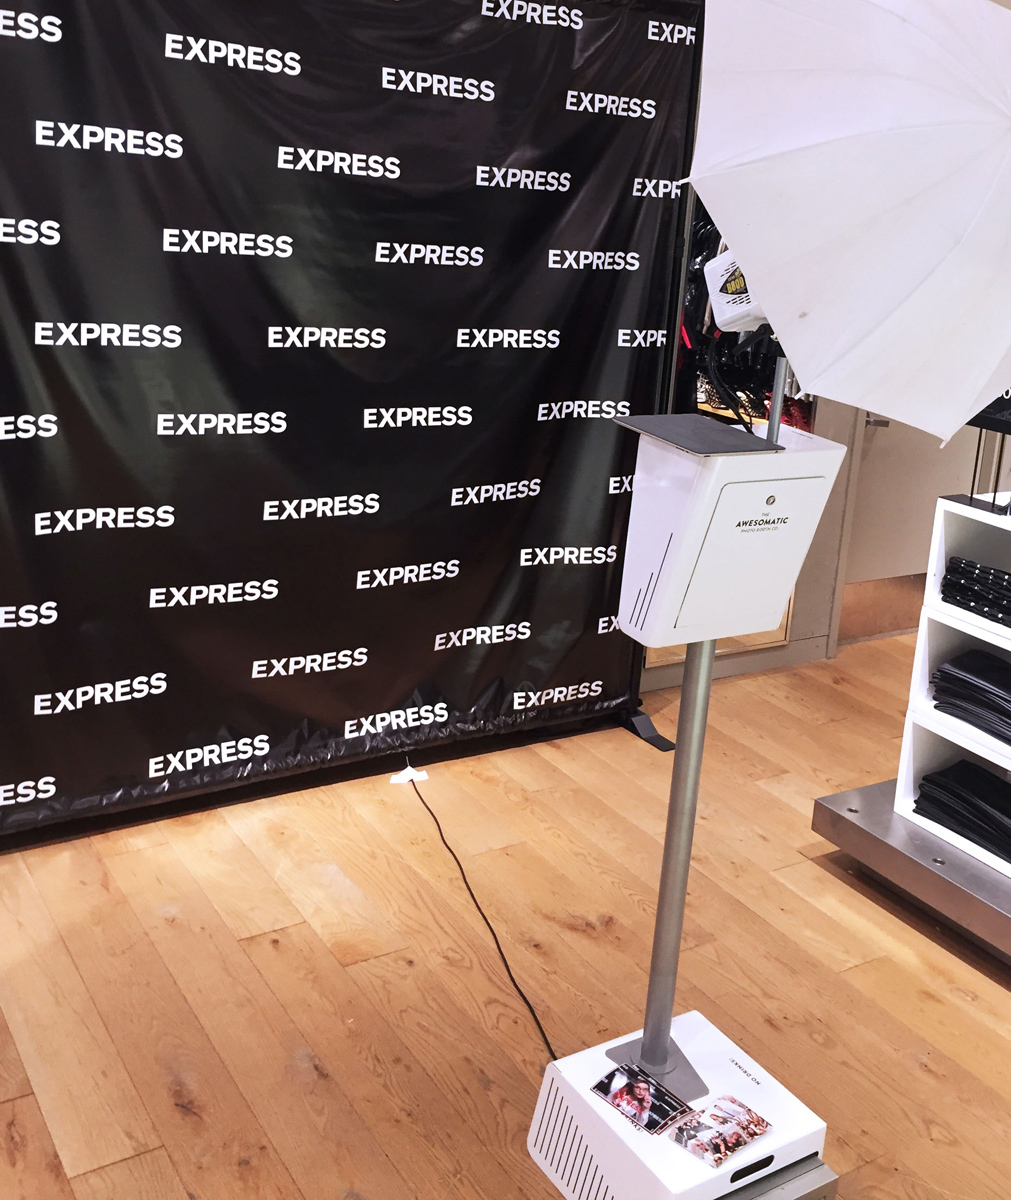 Express Photo Booth